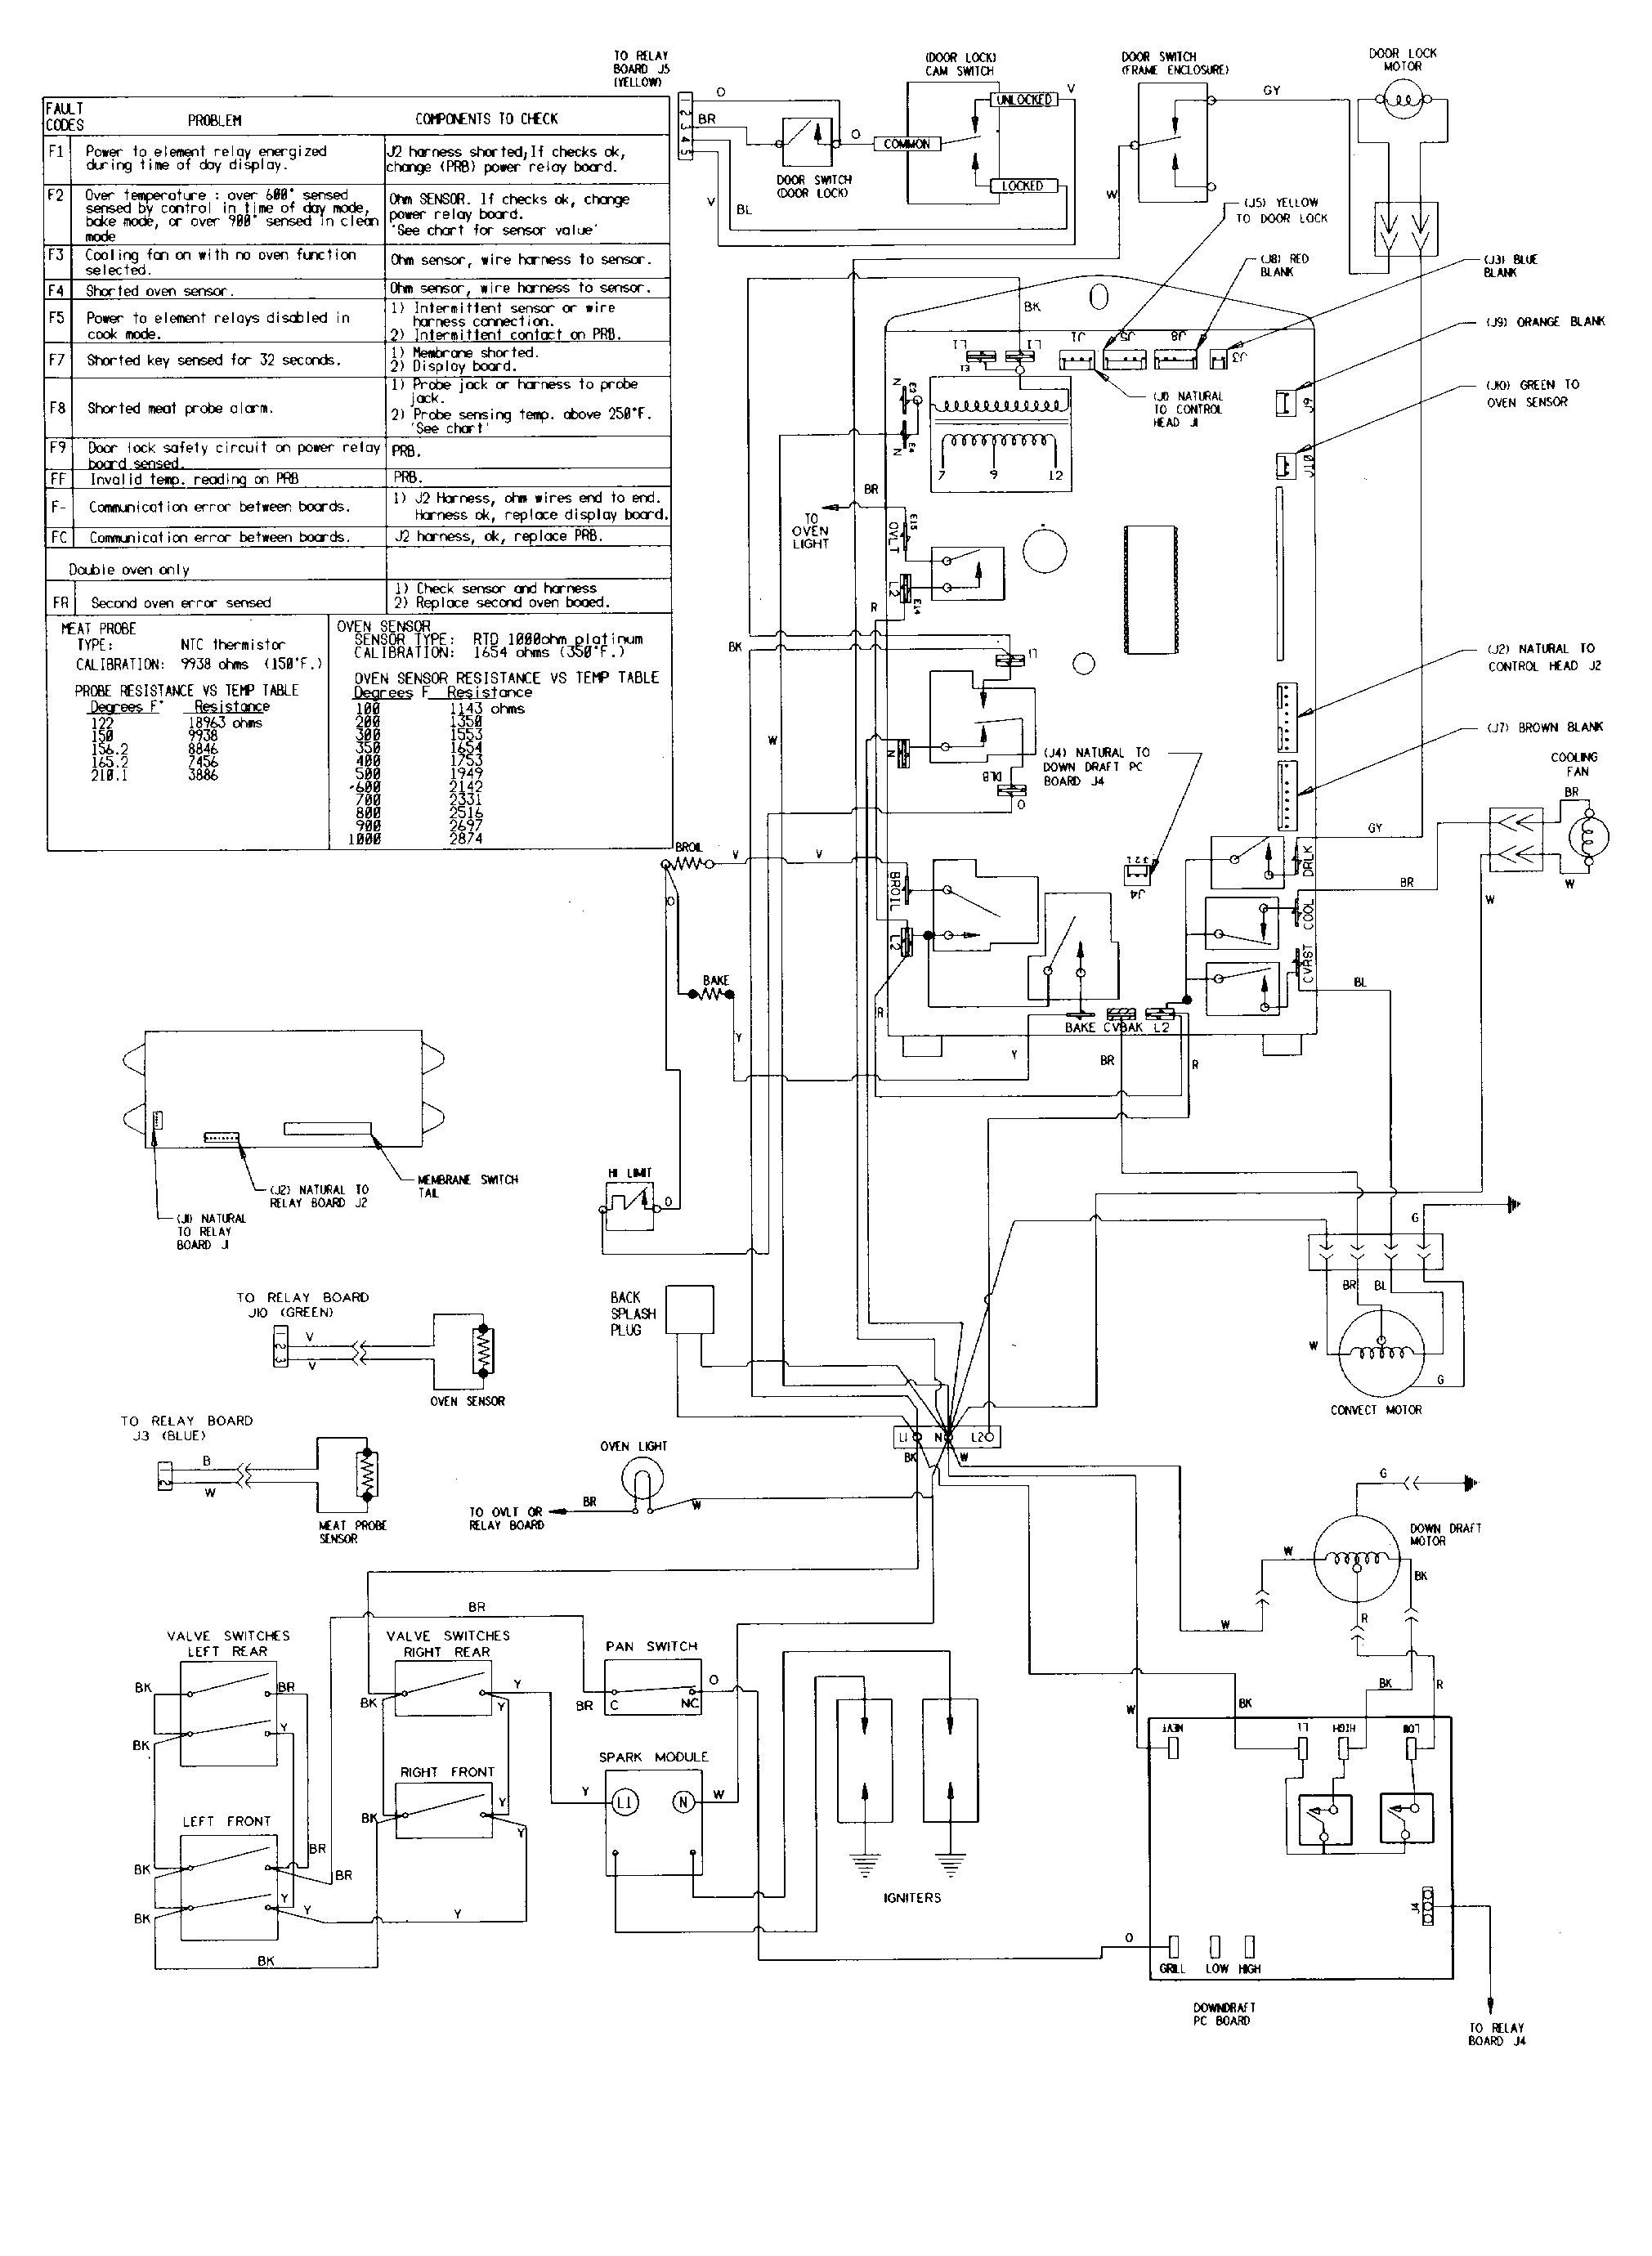 Kitchenaid Range Wiring Diagram Just Another Blog Refrigerator Schematic Photos For Help Your Rh 19 7 Derleib De Oven Superba Supressor